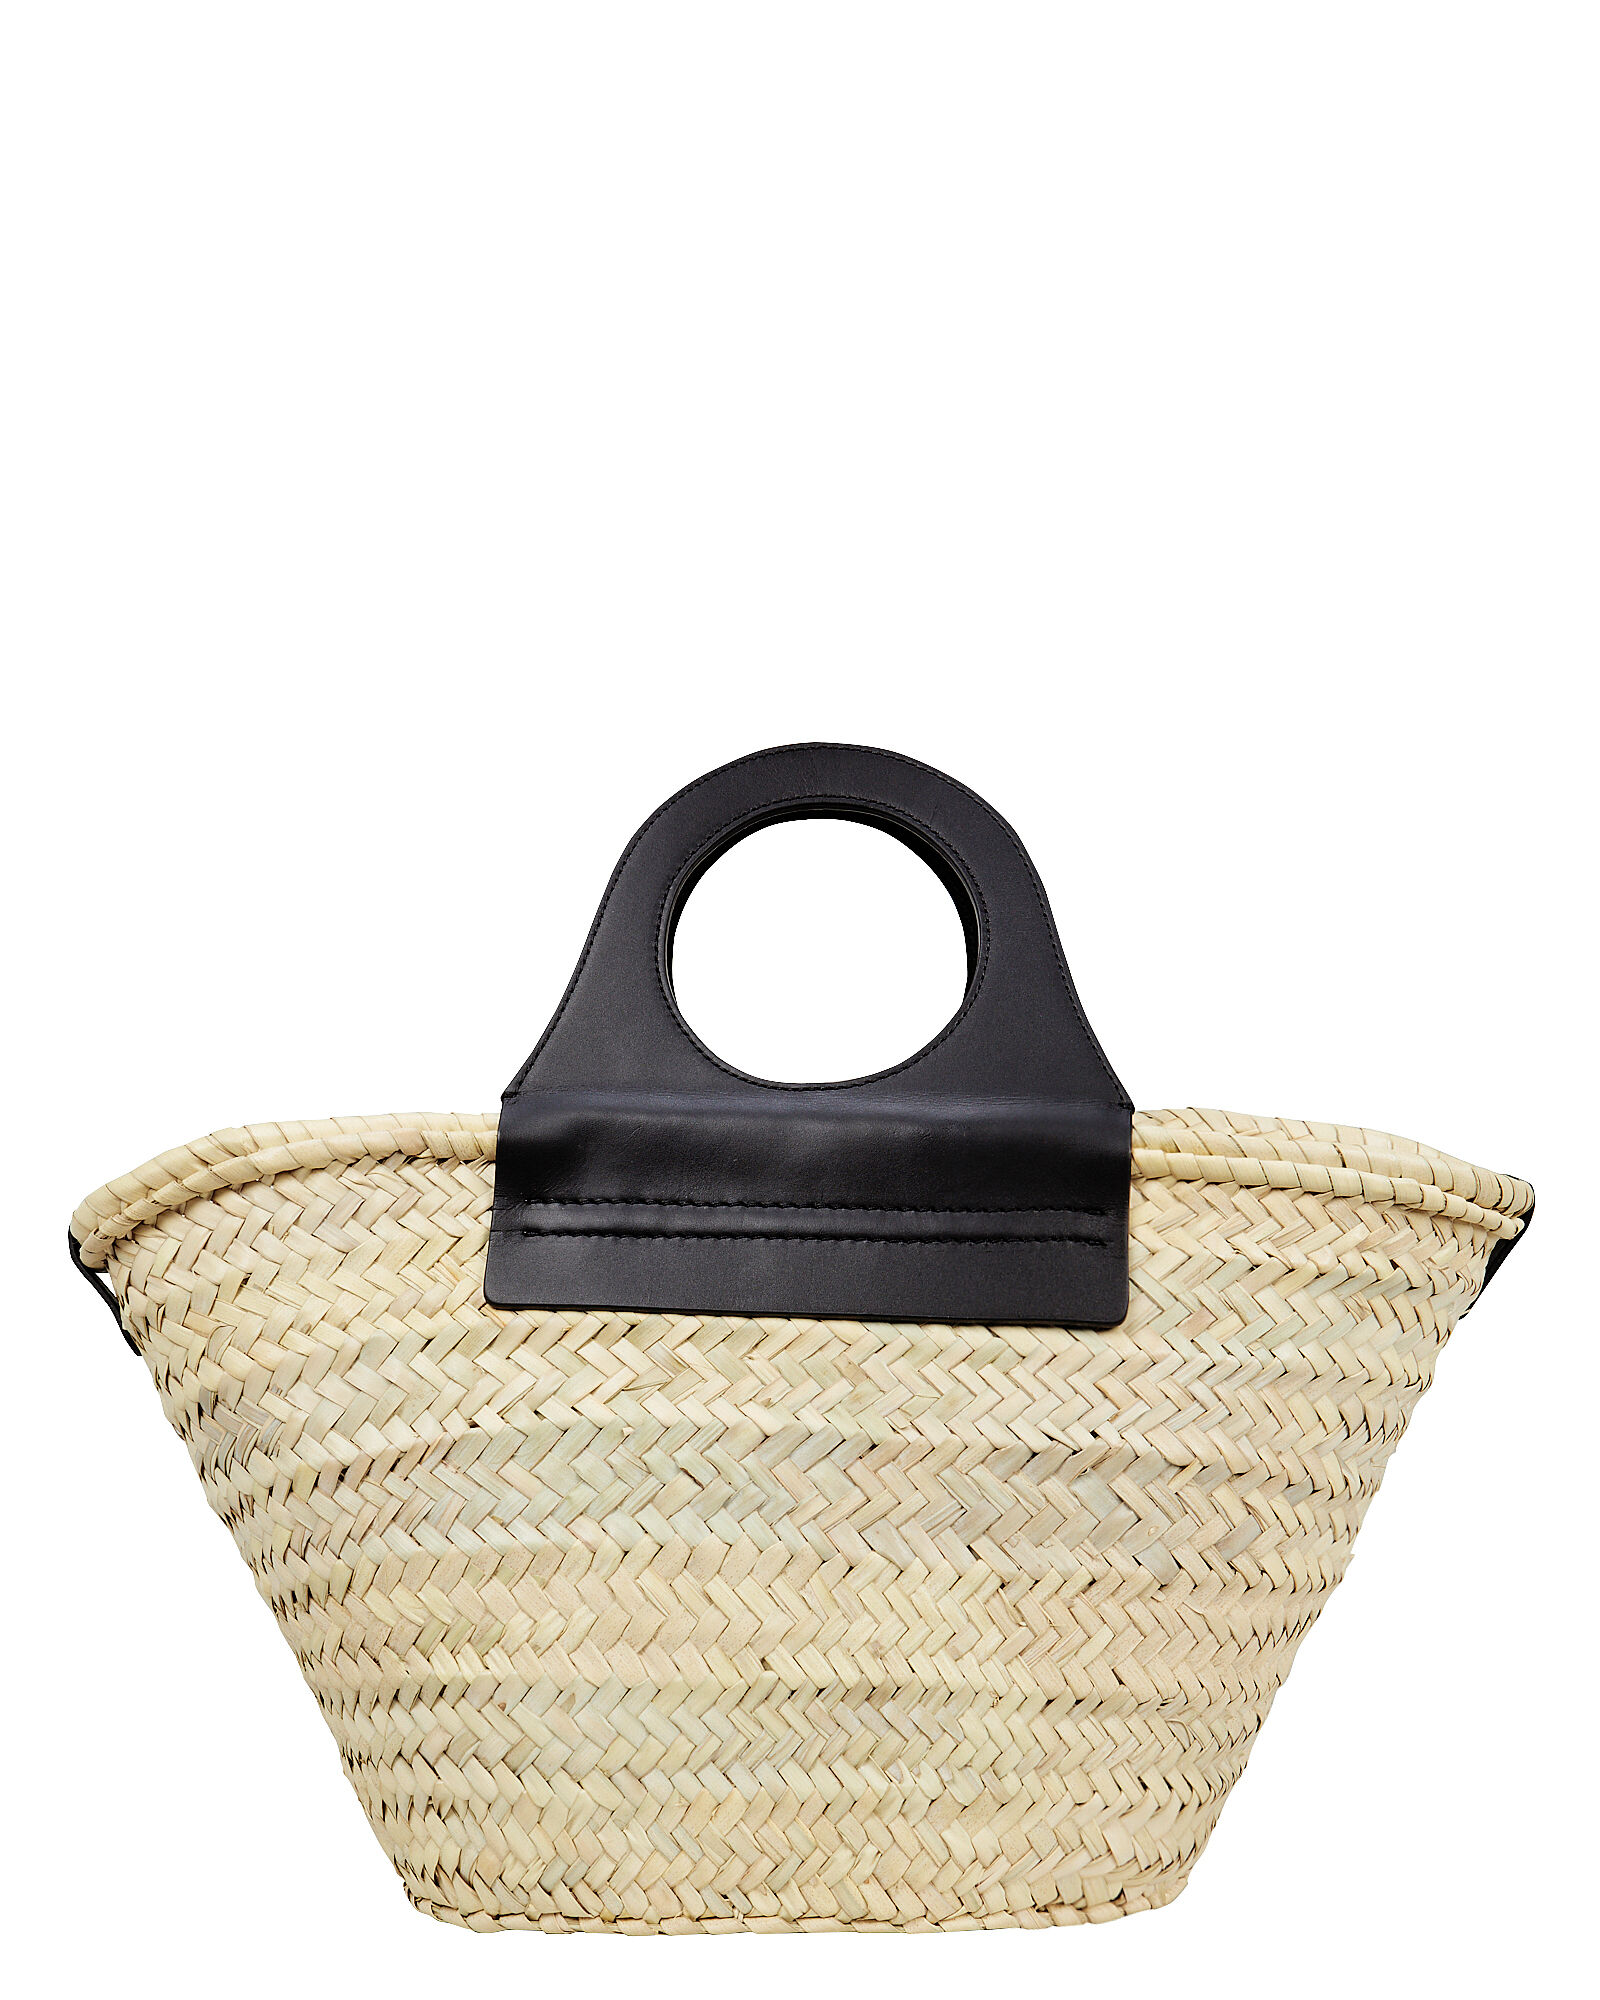 Cabas Straw Tote Bag, BEIGE, hi-res